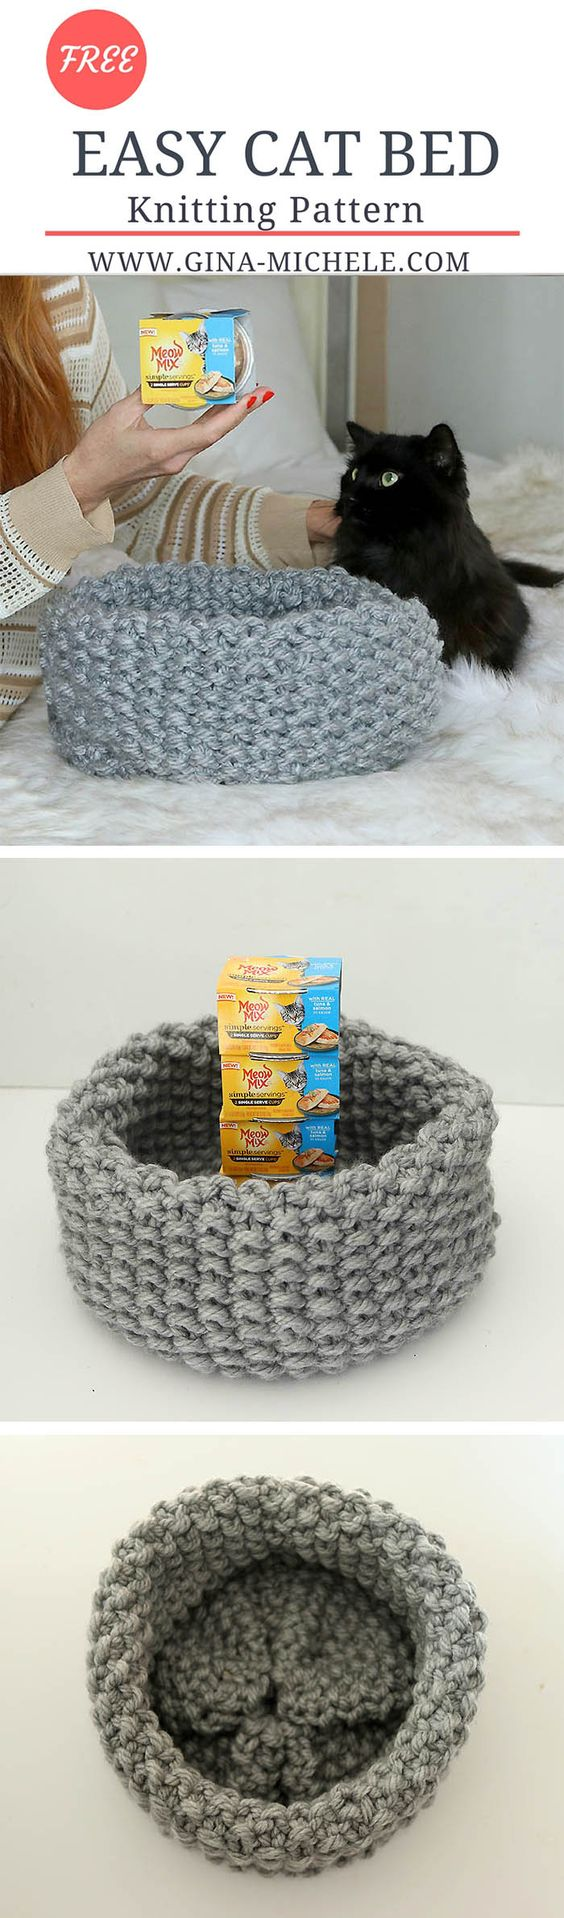 15+ Crochet Pet Bed Ideas | Styletic